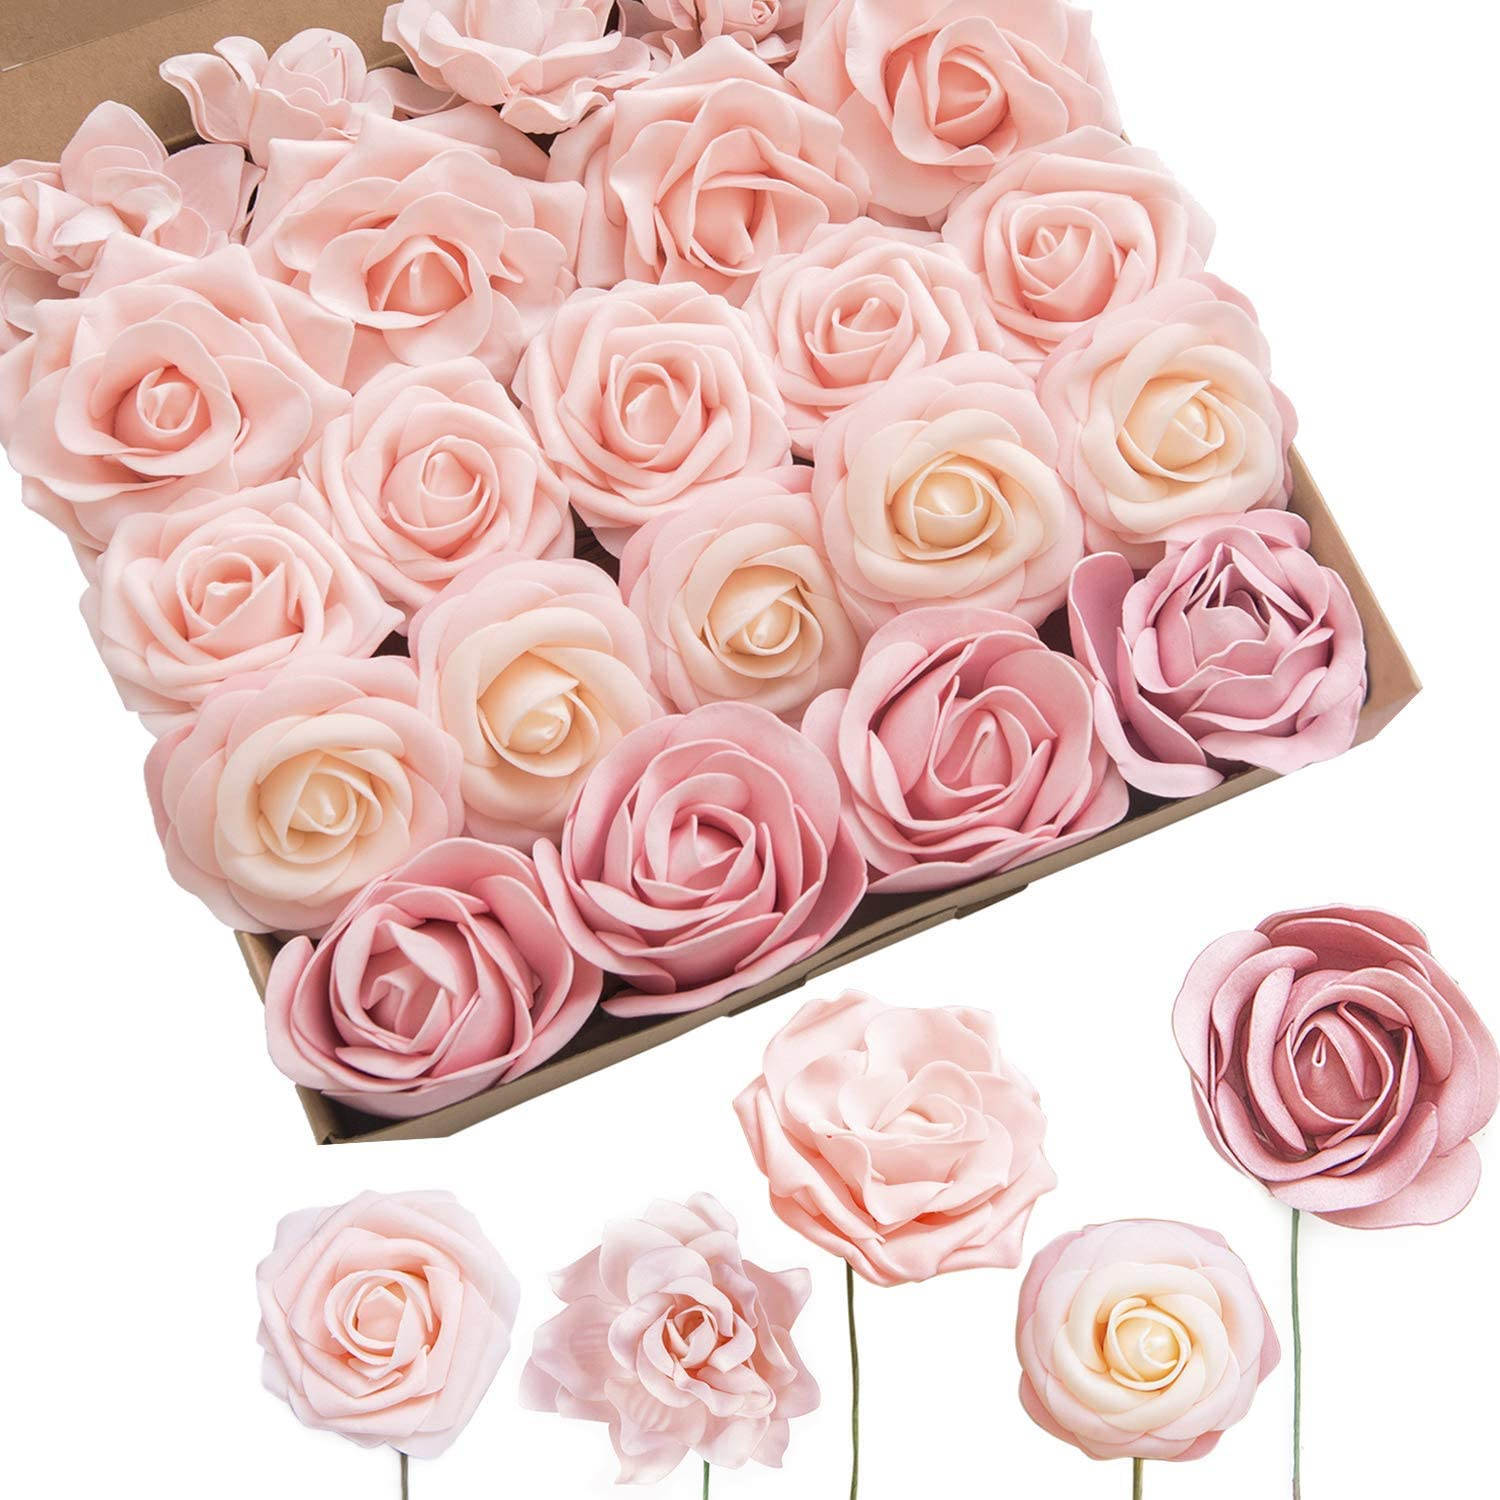 Ling's moment Artificial Flowers Cozy Blush Combo Box Set for DIY Wedding Bouquet Centerpieces Flower Garlands Arrangements Home Decorations